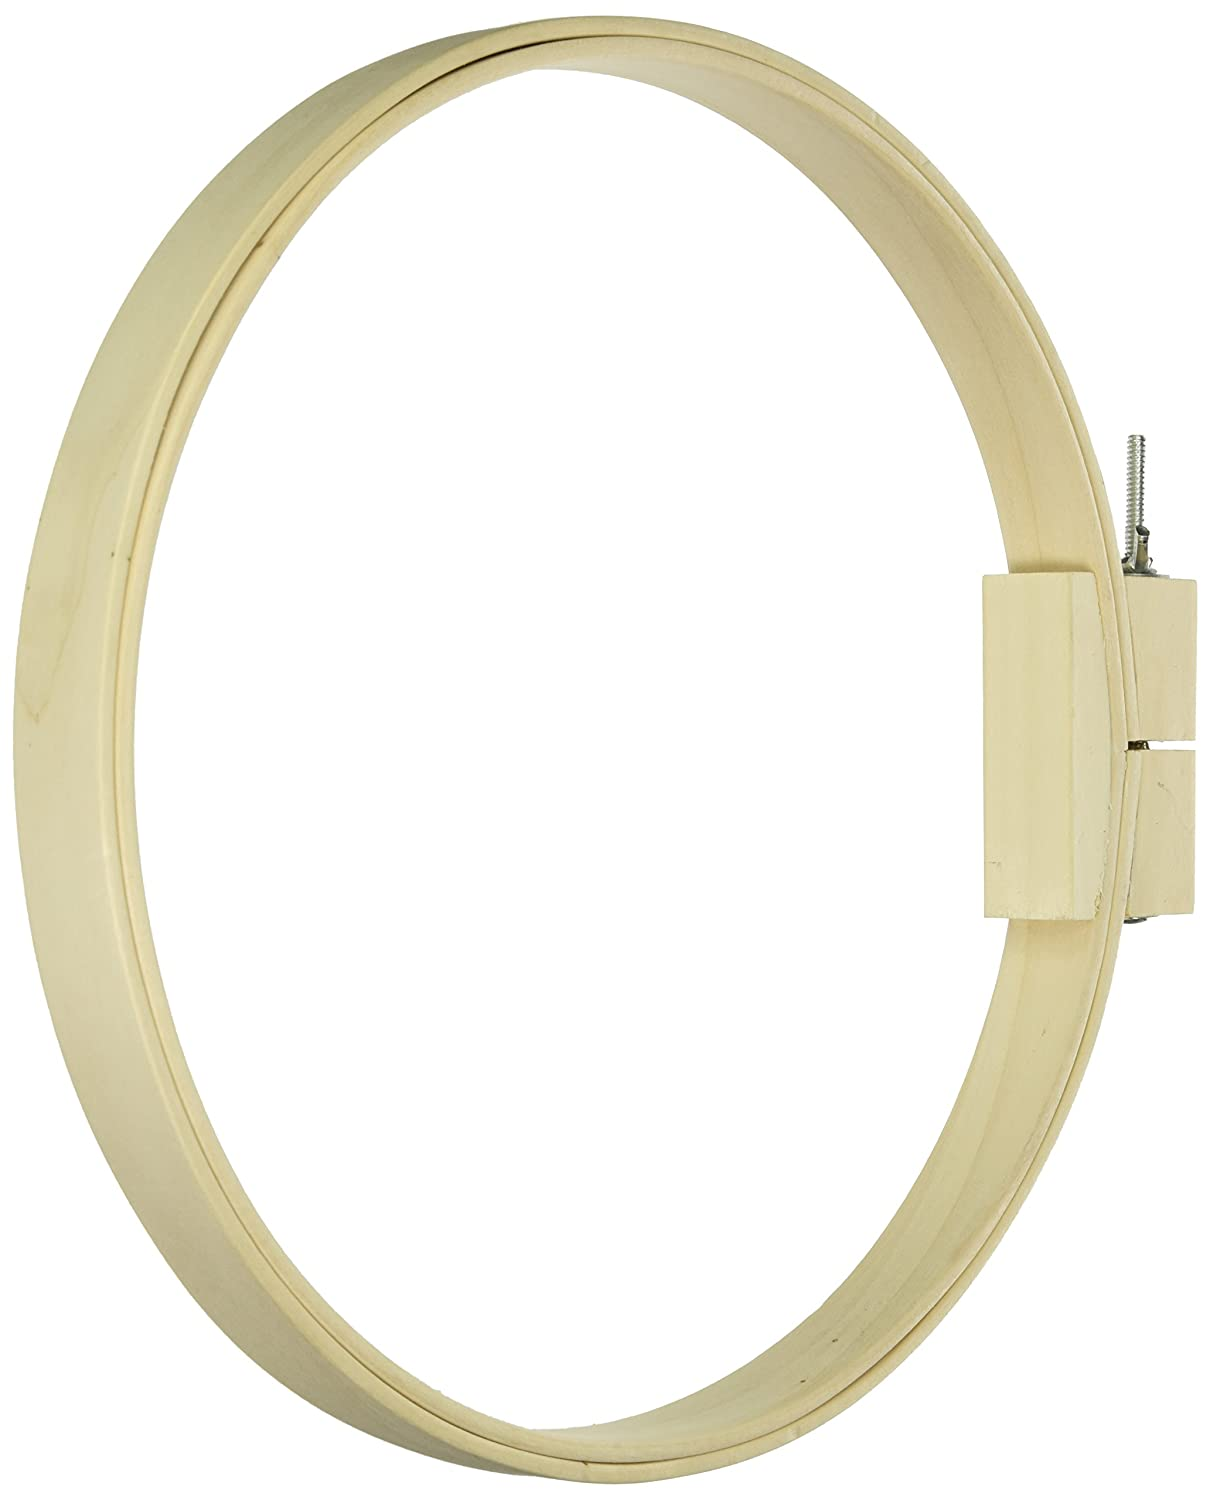 Frank A. Edmunds 12-inch Round Wood Quilt Hoop,5588 Bohin 5588W